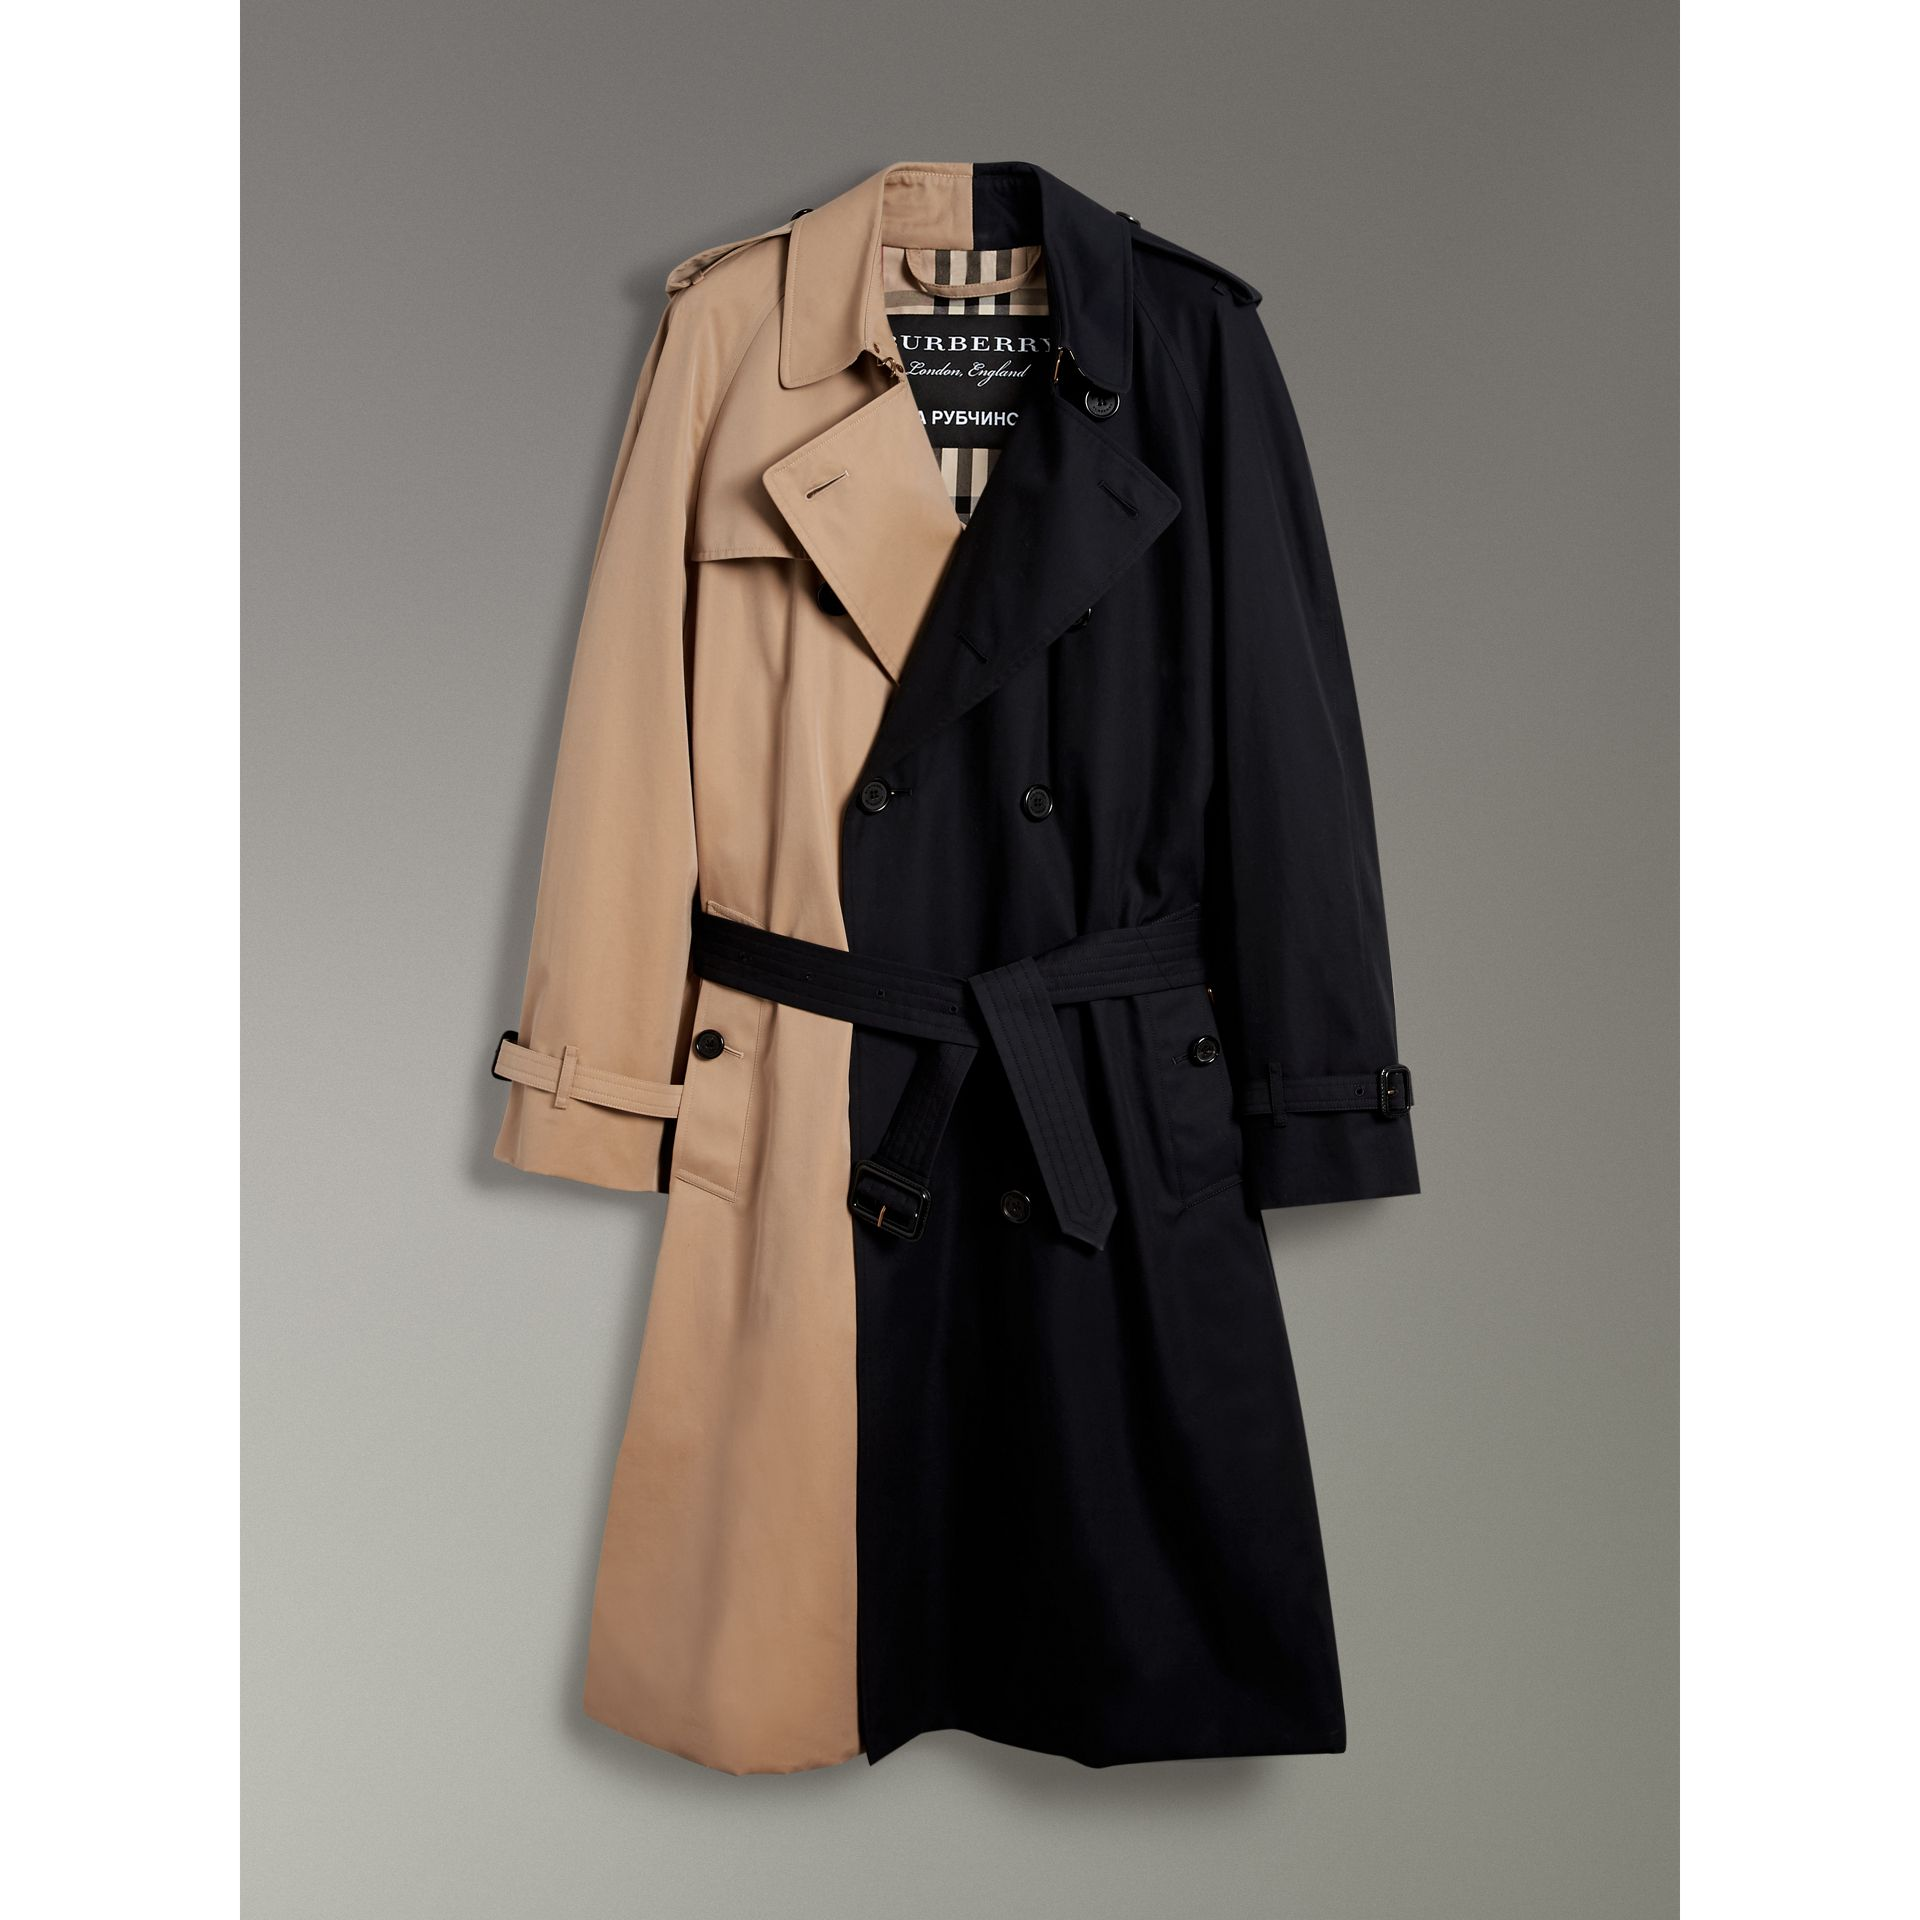 Gosha x Burberry Two-tone Trench Coat in Honey | Burberry United Kingdom - gallery image 4